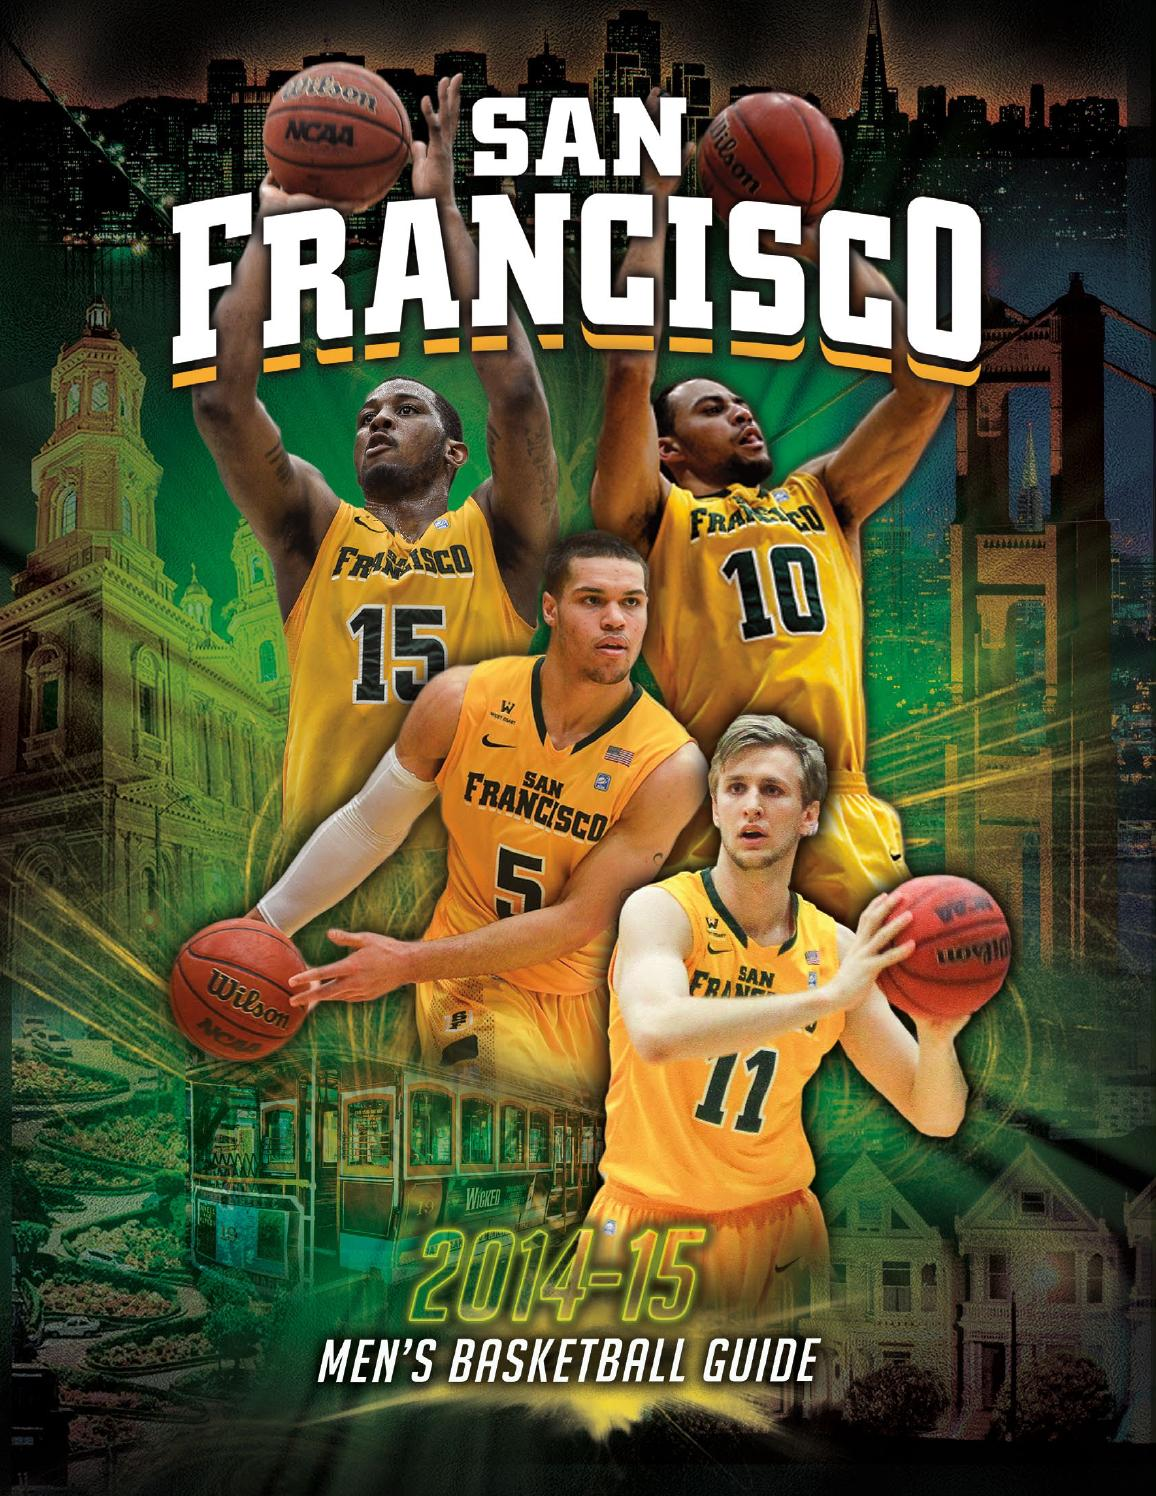 USF 2014-15 Men's Basketball Media Guide by USF Dons - Issuu